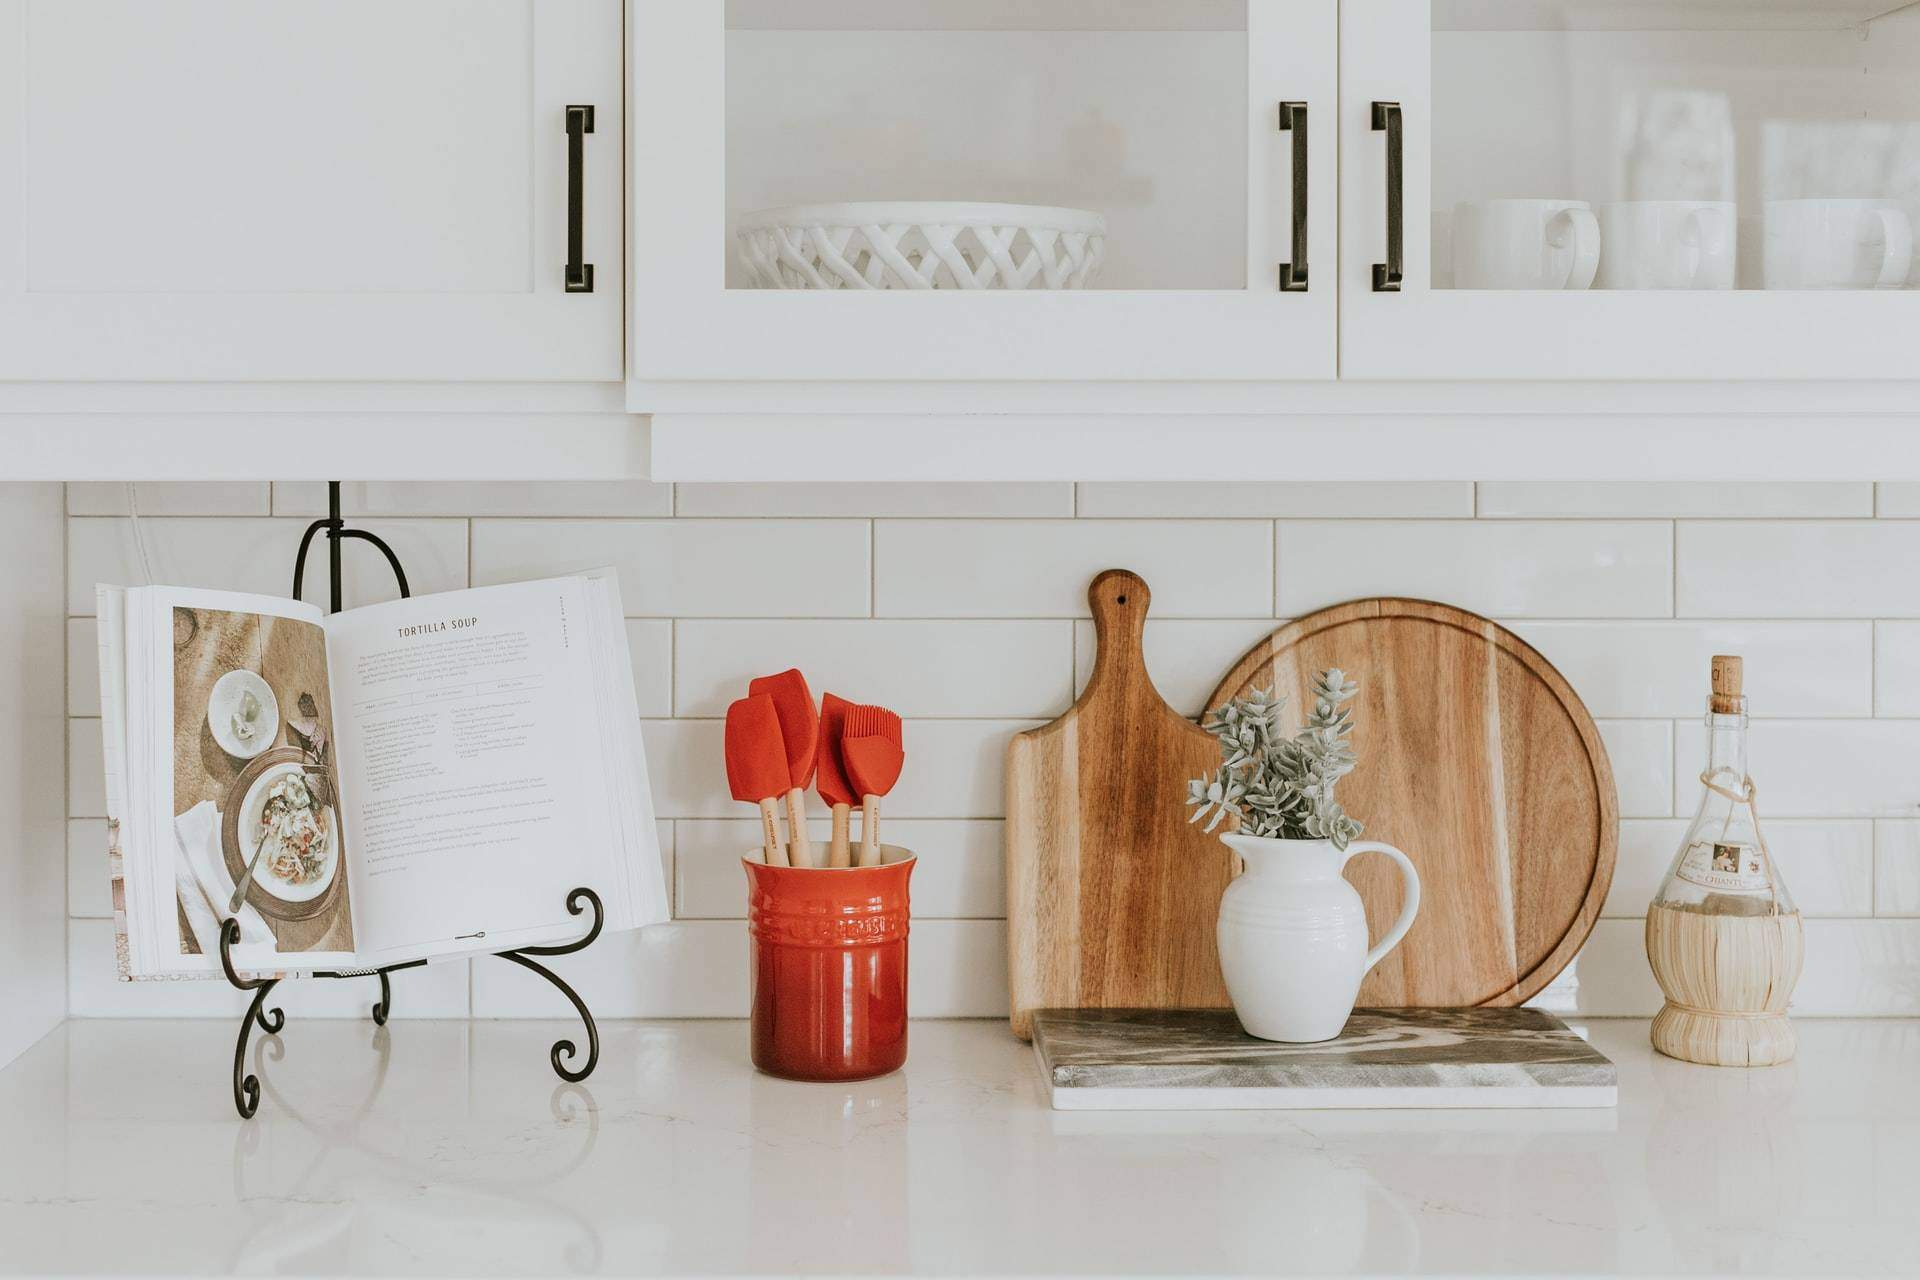 Small Kitchen Space Organization: Best and Easy Ideas and Tips